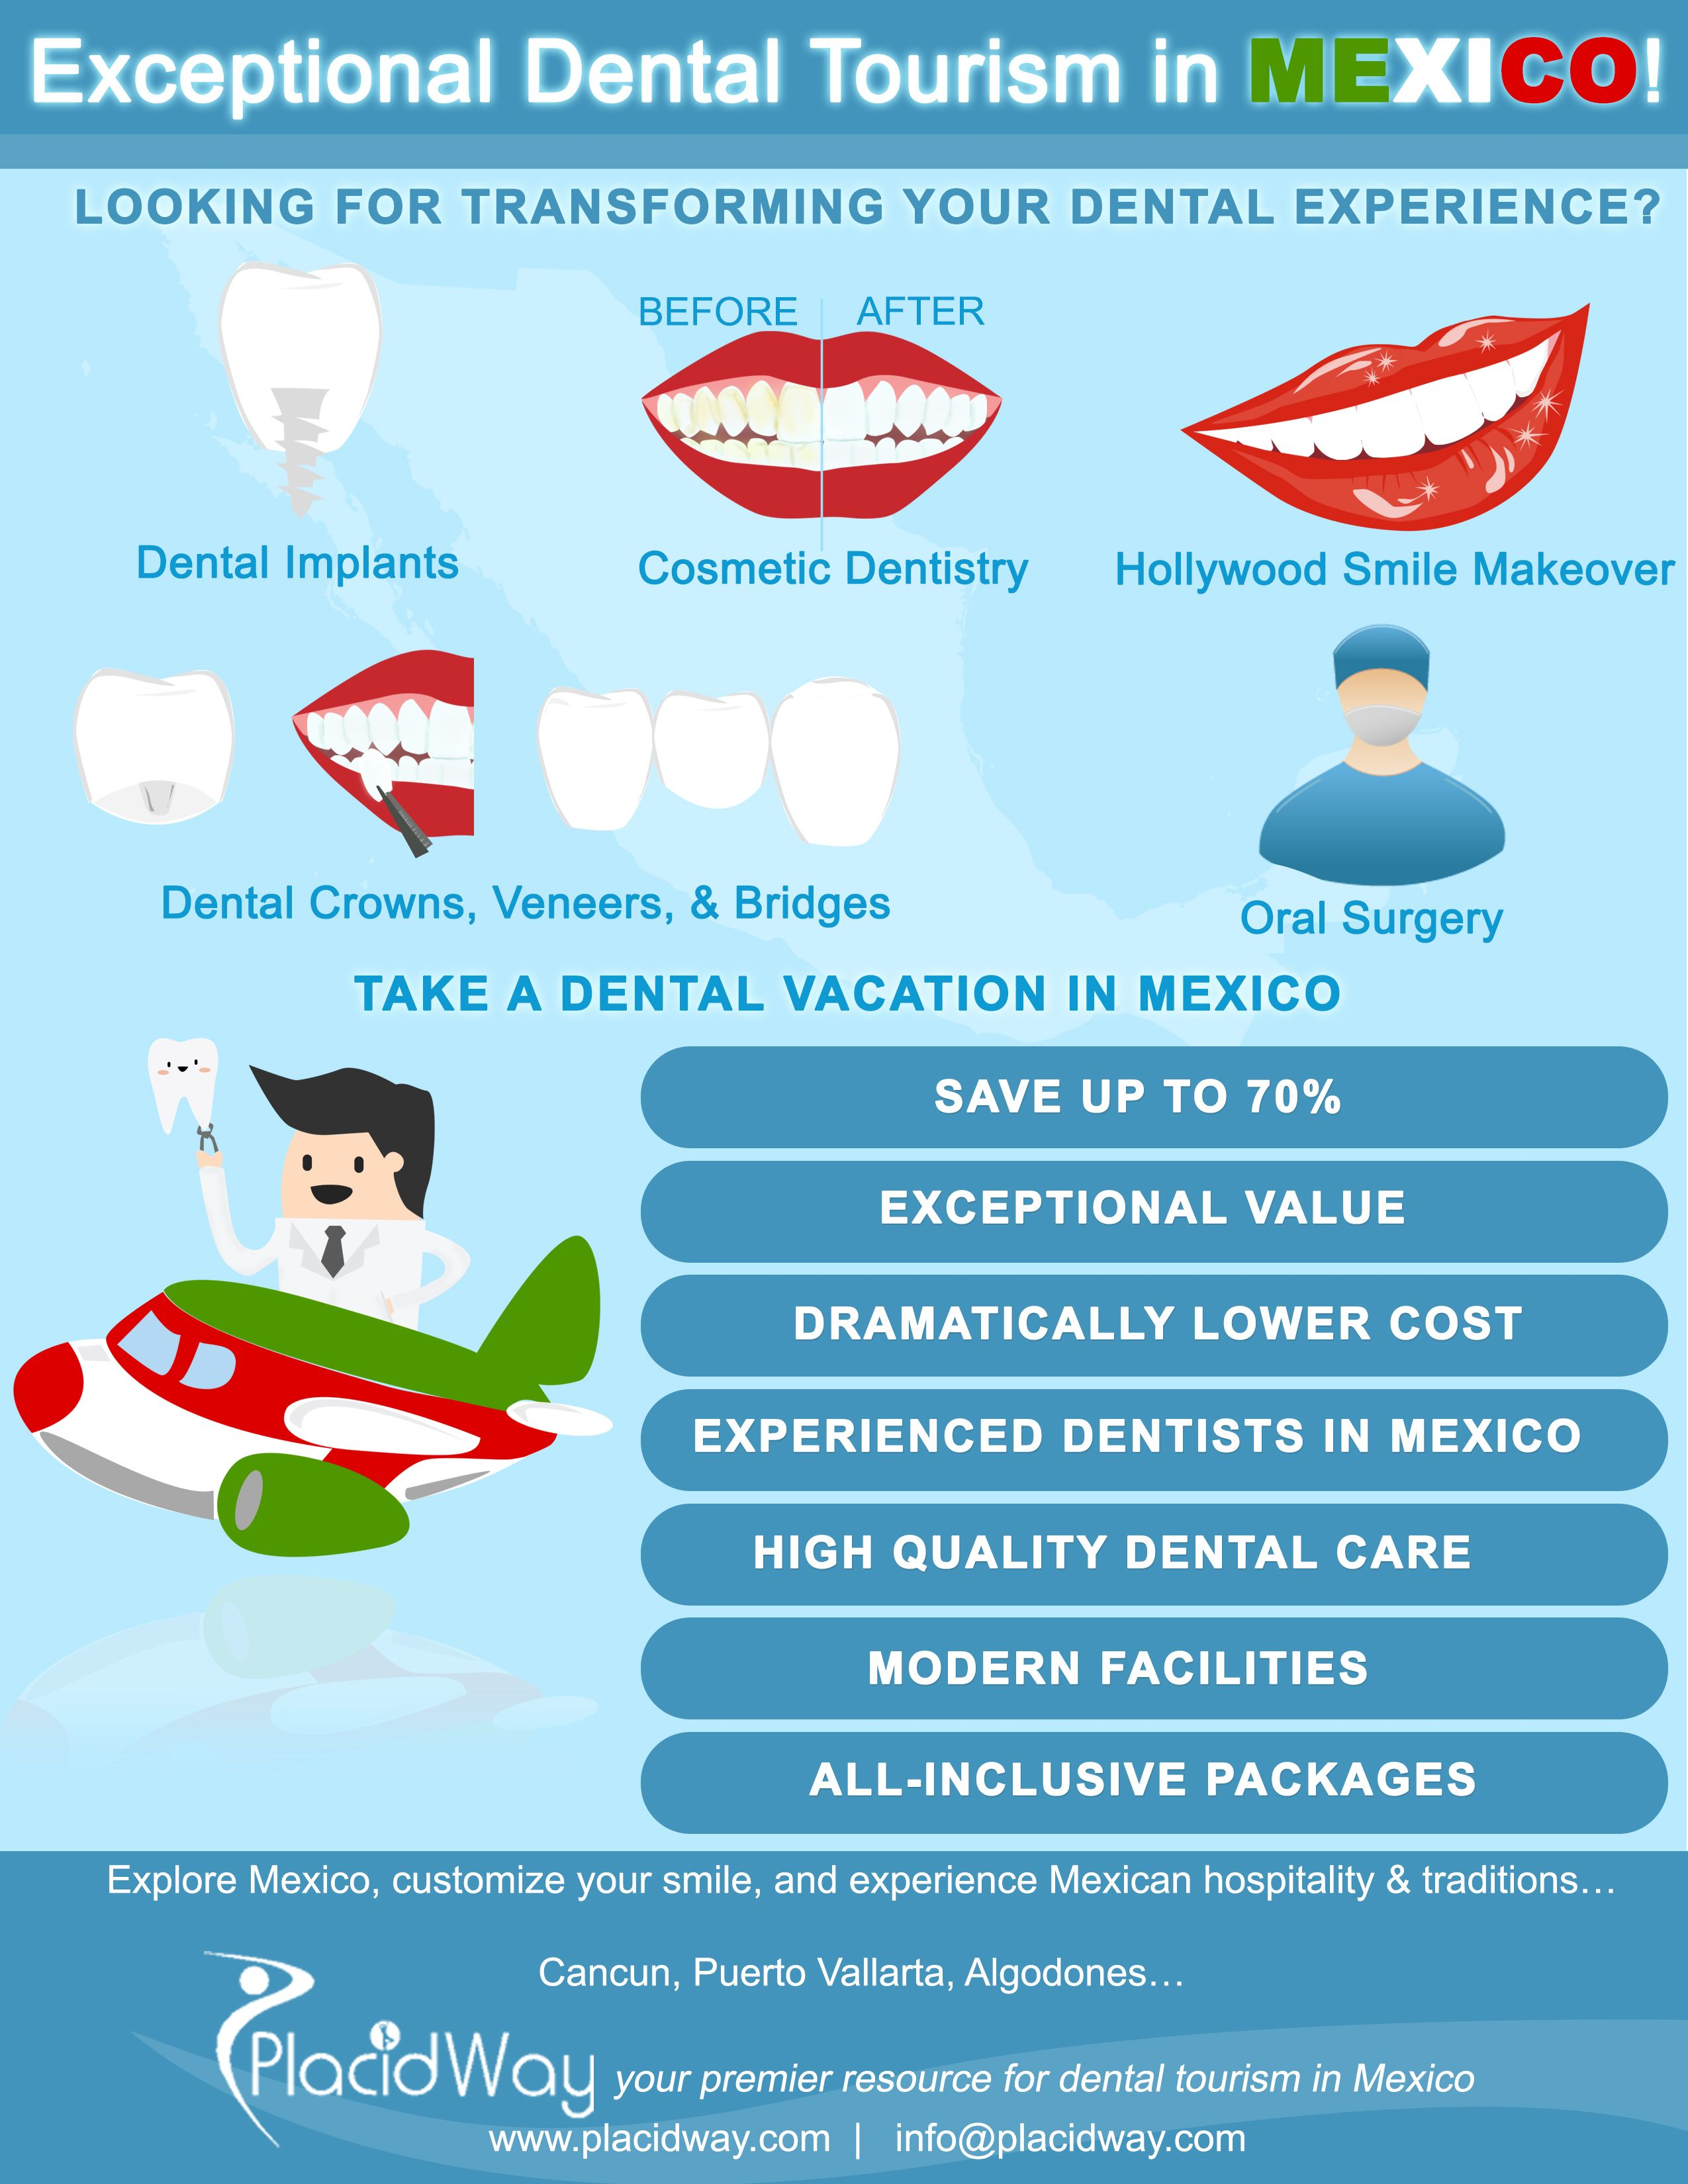 Best Medical Centers for Dentistry in Mexico | InfoGraphica